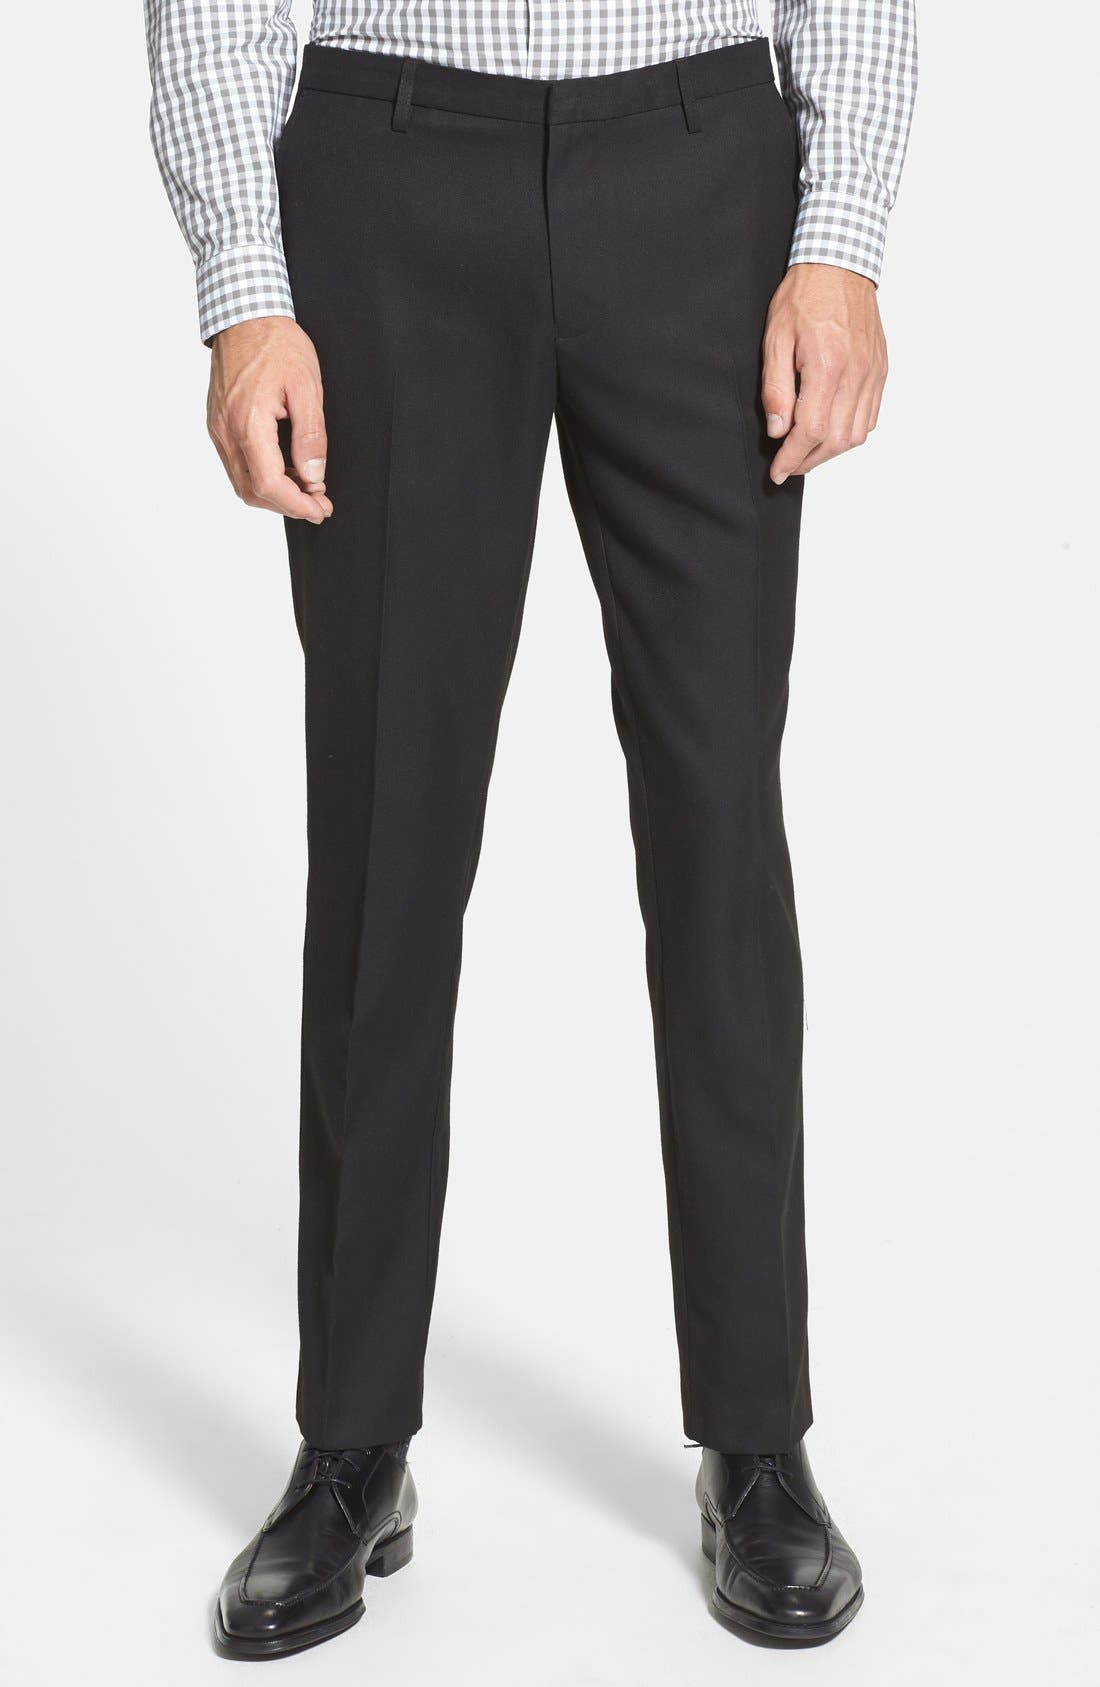 TOPMAN, Skinny Fit Cotton Flannel Trousers, Main thumbnail 1, color, 001